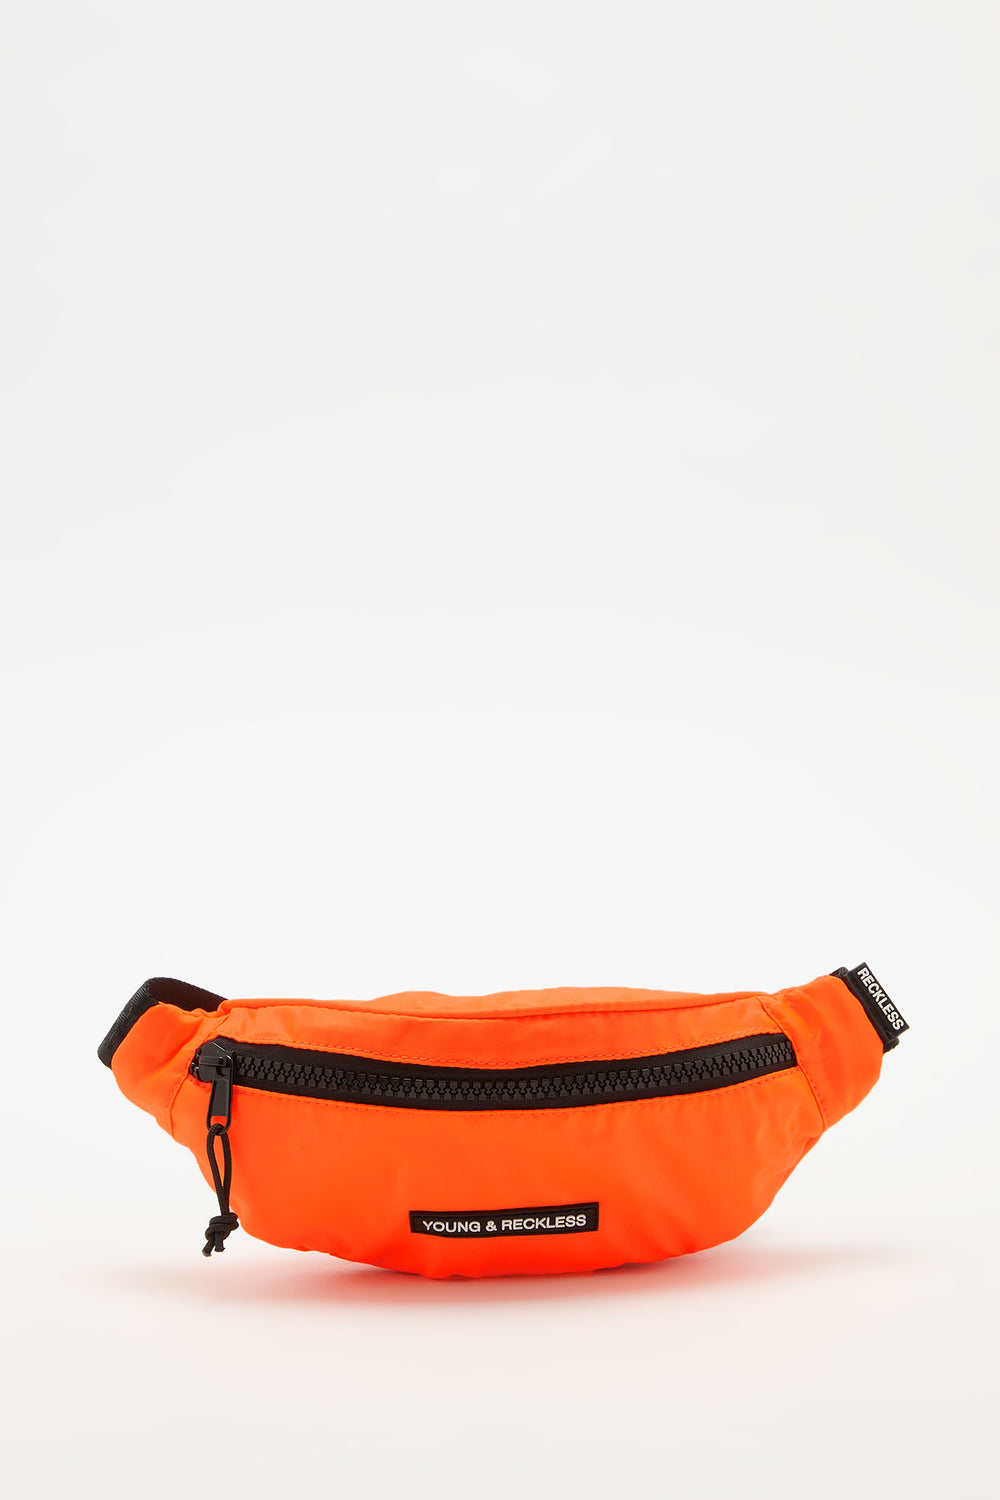 Young & Reckless Neon Fanny Pack Orange